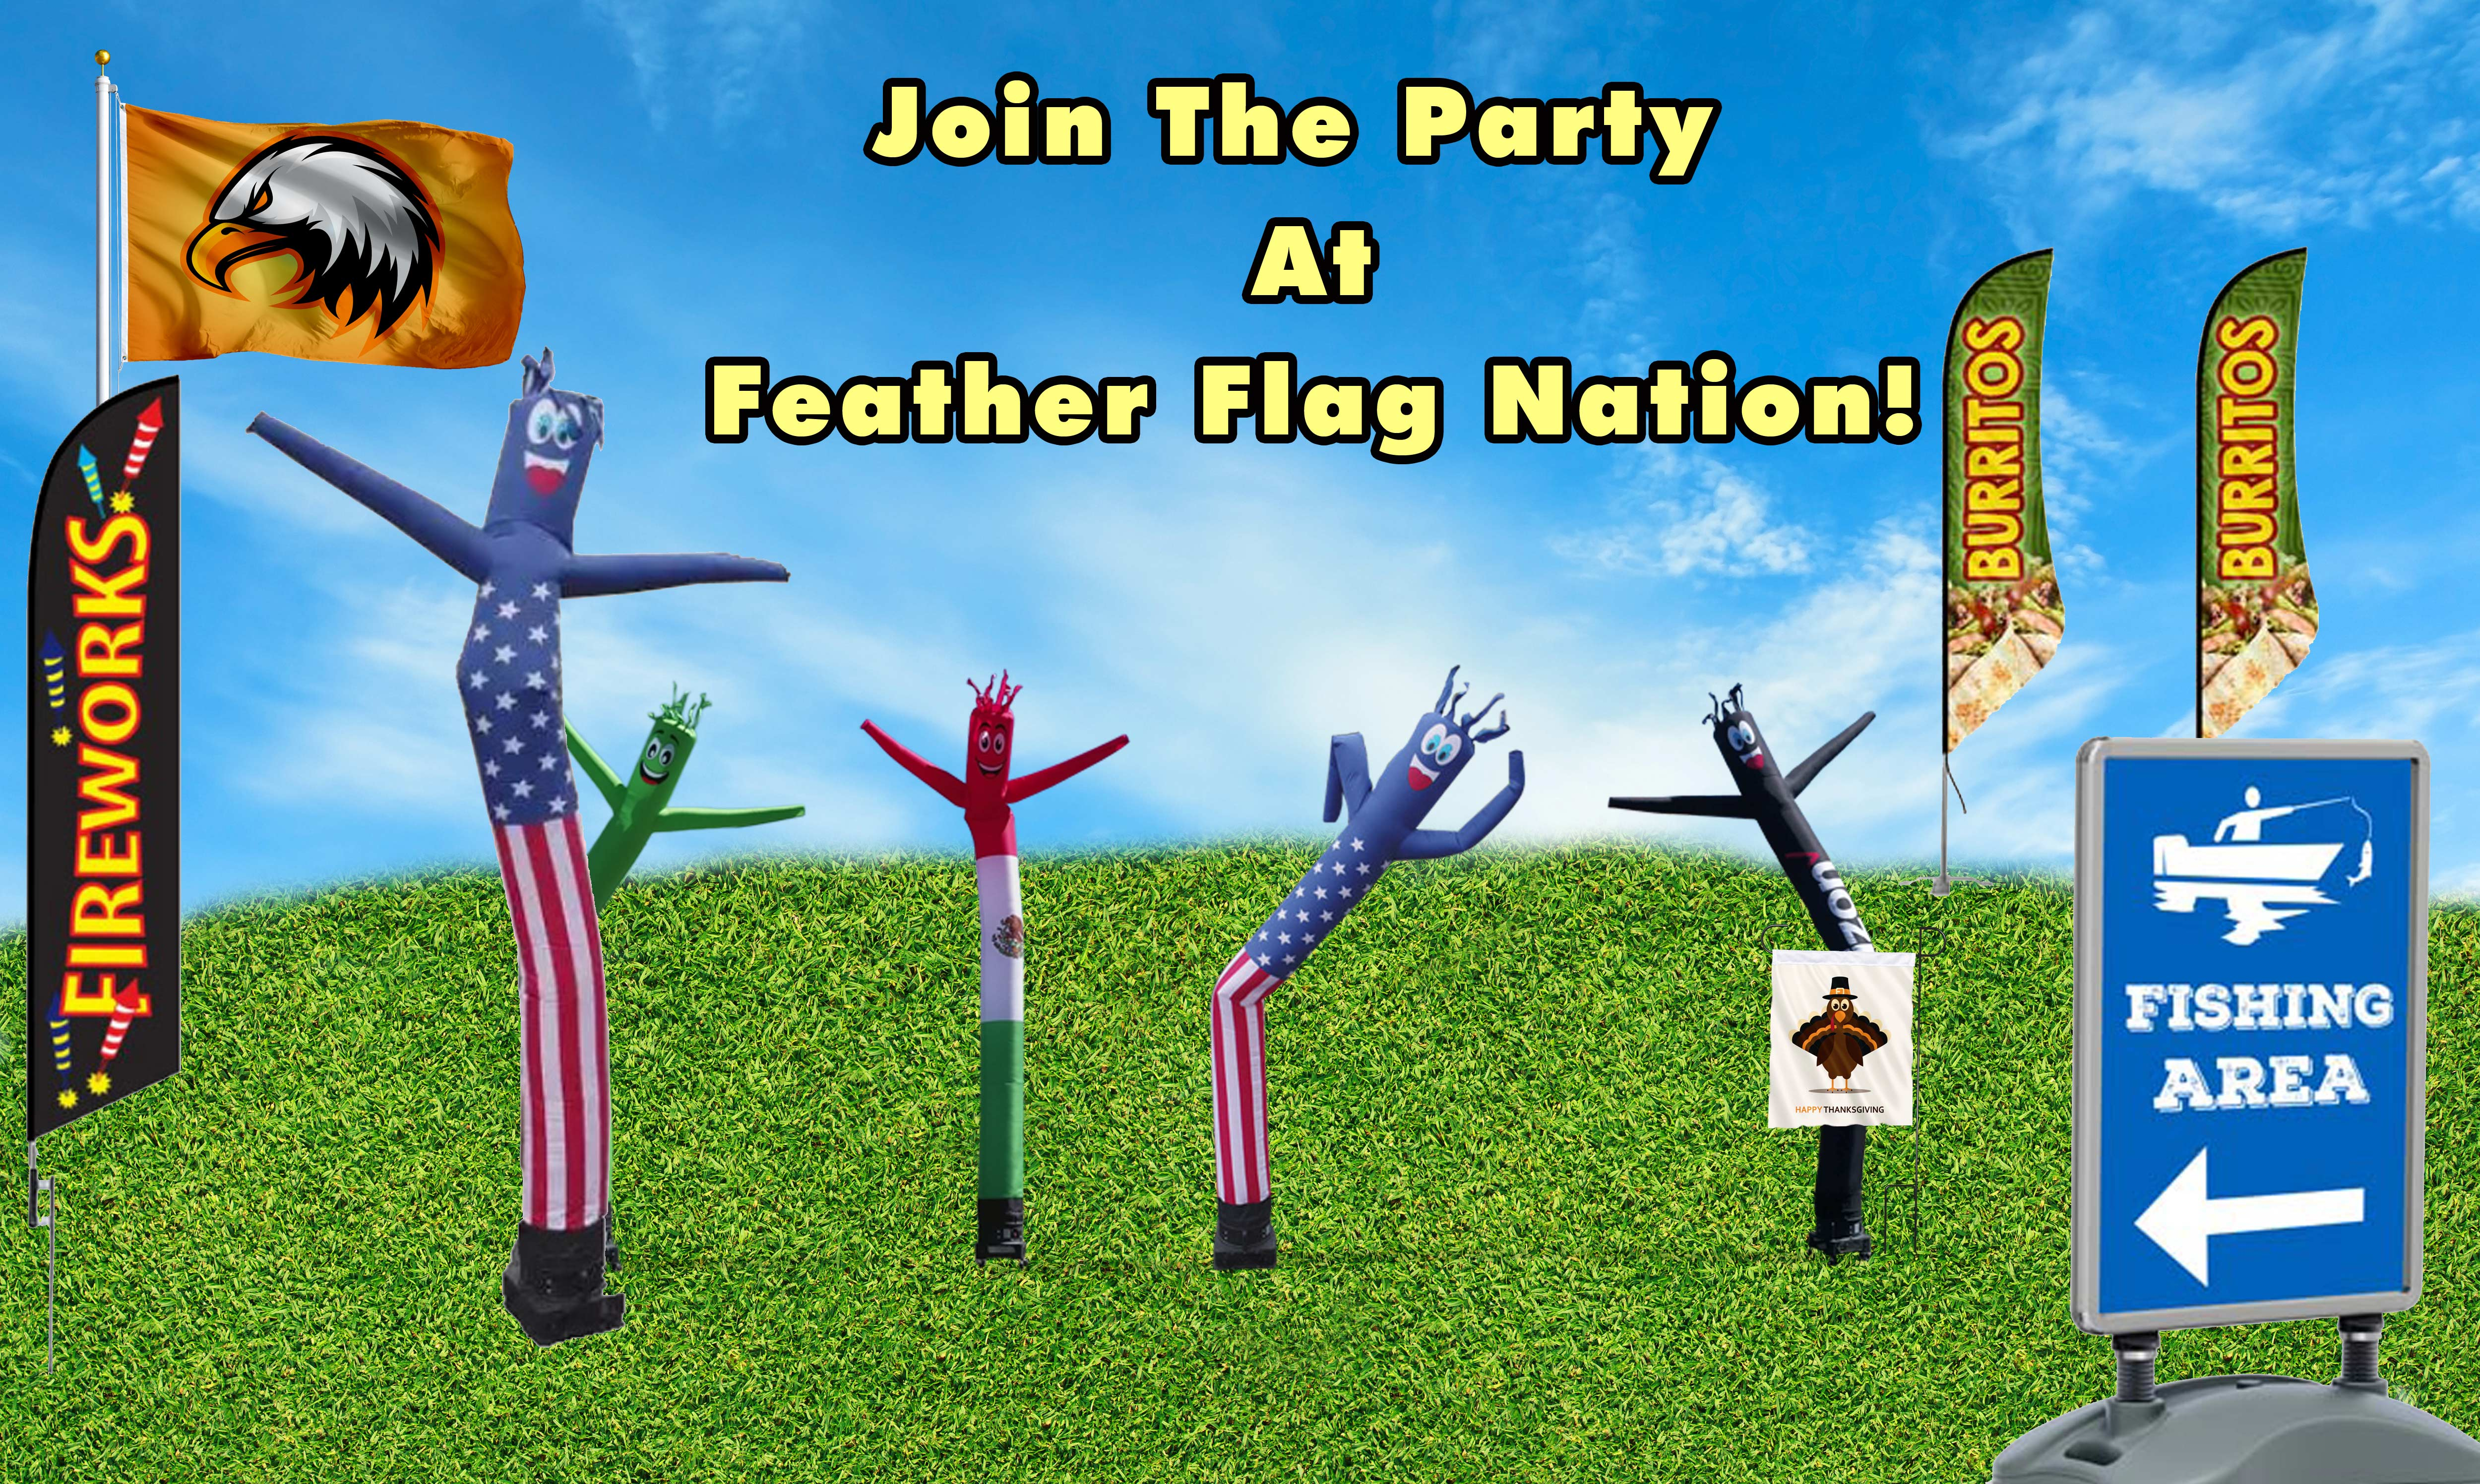 feather-flags-a-frames-tube-men-feather-flag-nation-lawn-sign.jpg